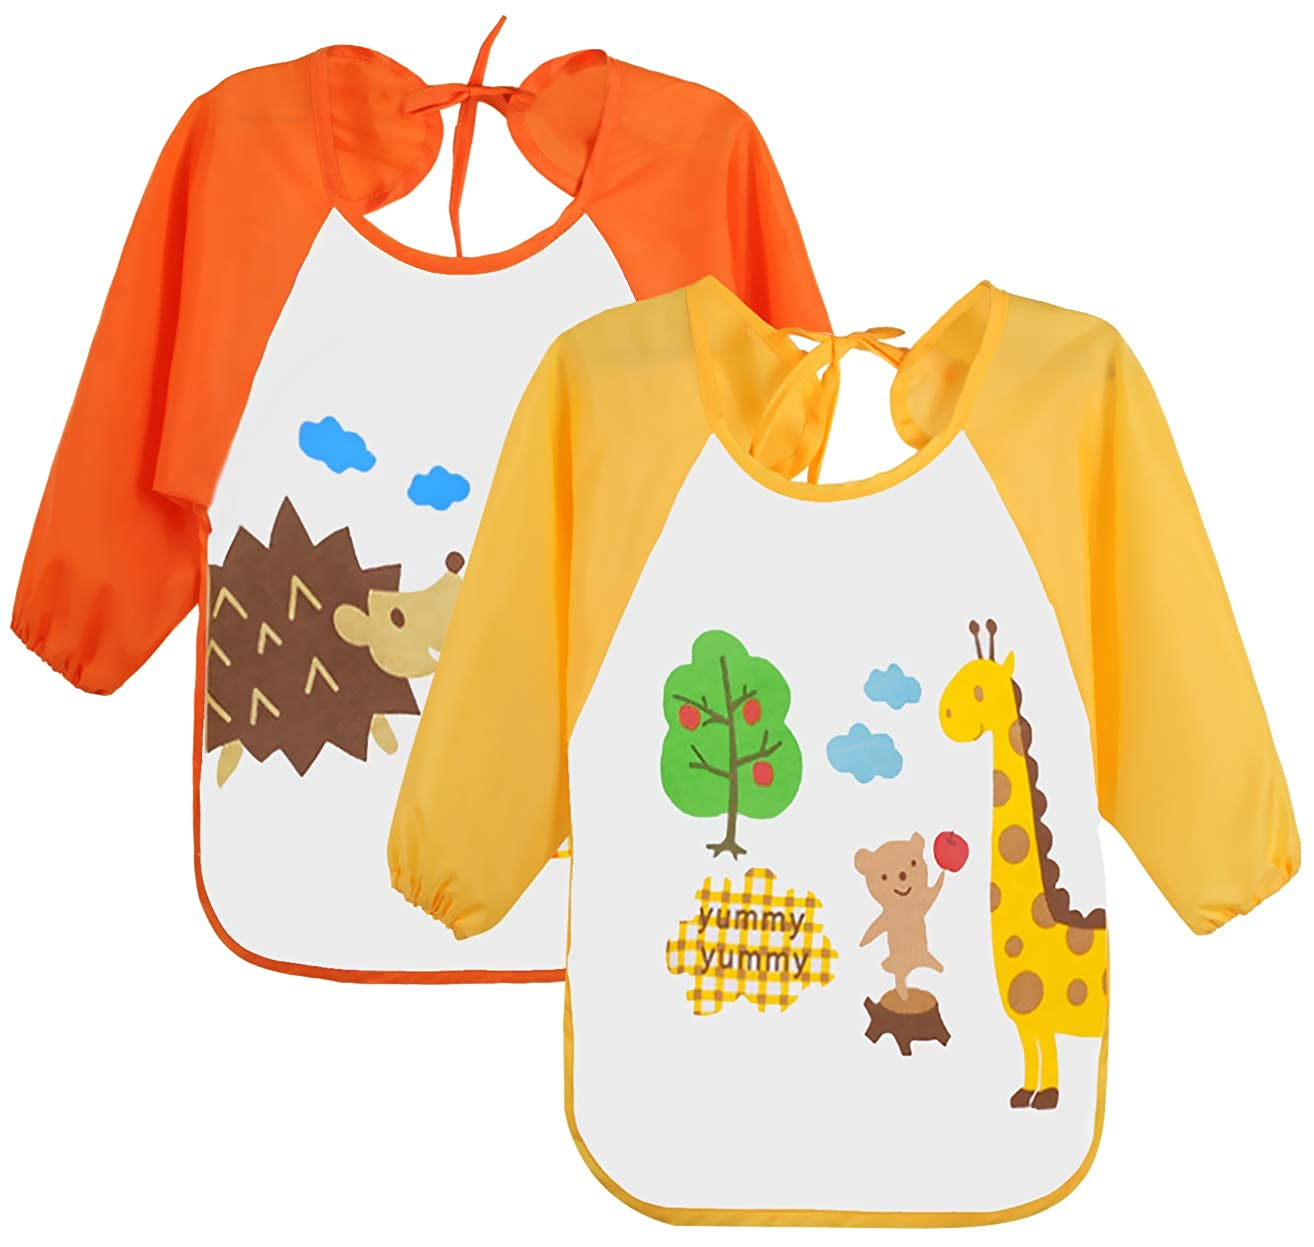 Leyaron 2 Pack Unisex Infant Toddler Baby Waterproof Sleeved Bib, 6 Months-3 Years, Orange Monkey and Yellow Giraffe